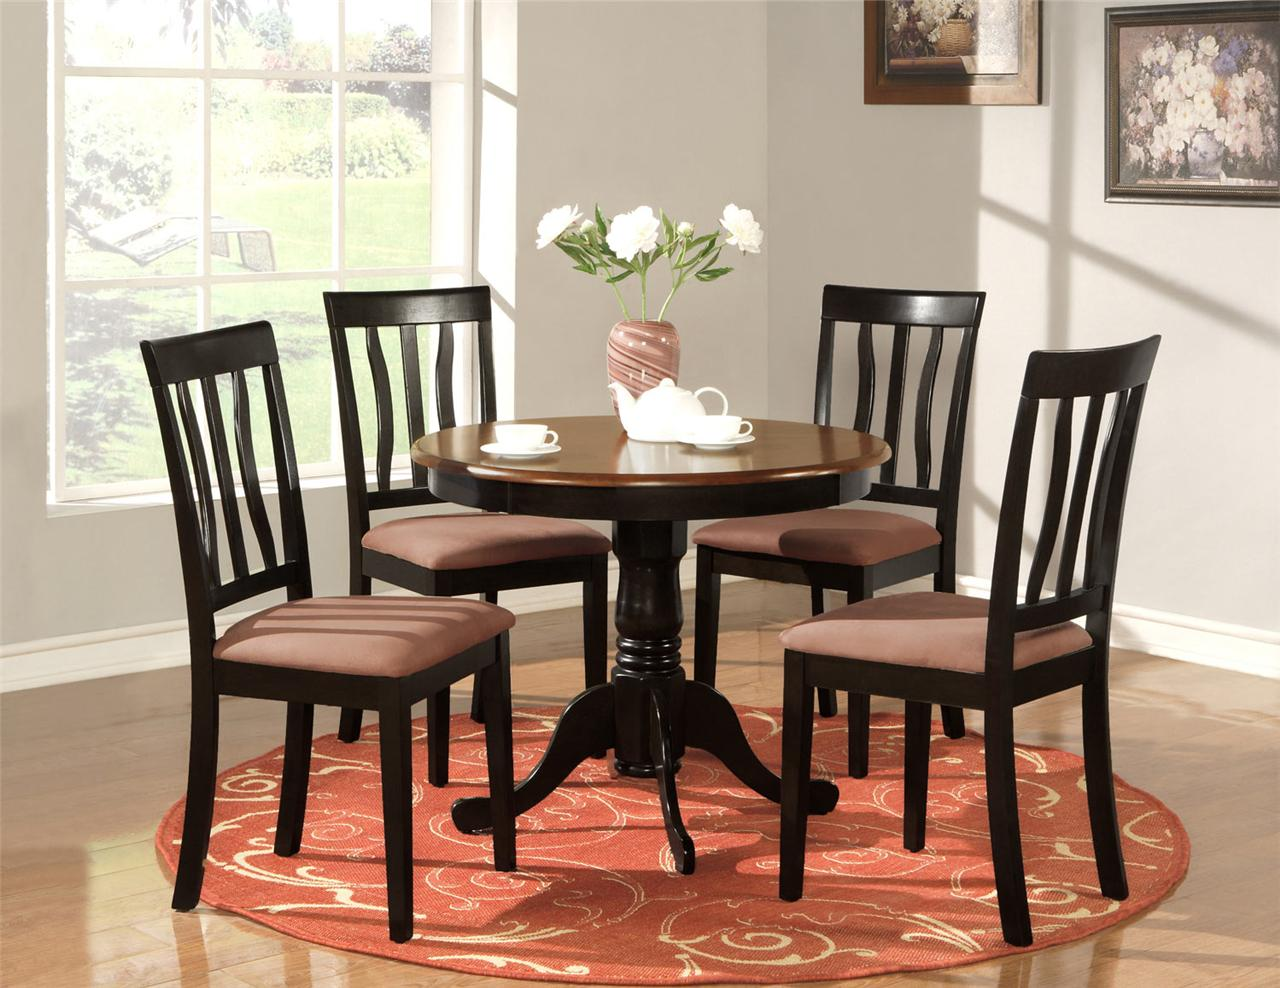 5 pc round table dinette kitchen table 4 chairs oak ebay for Kitchen table with 4 chairs